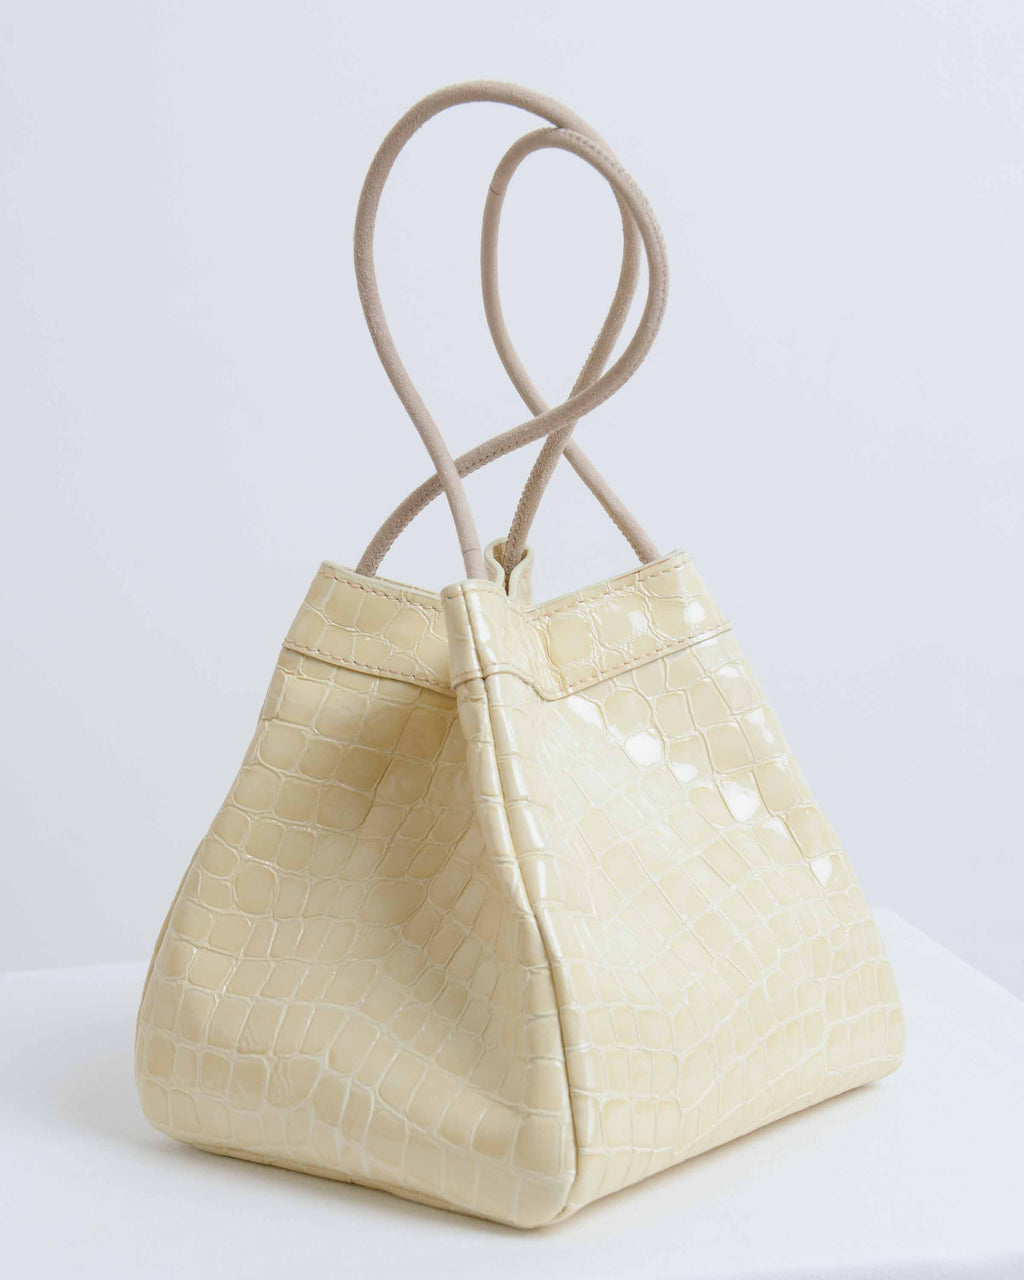 Cream Embossed Leather Rita Bag